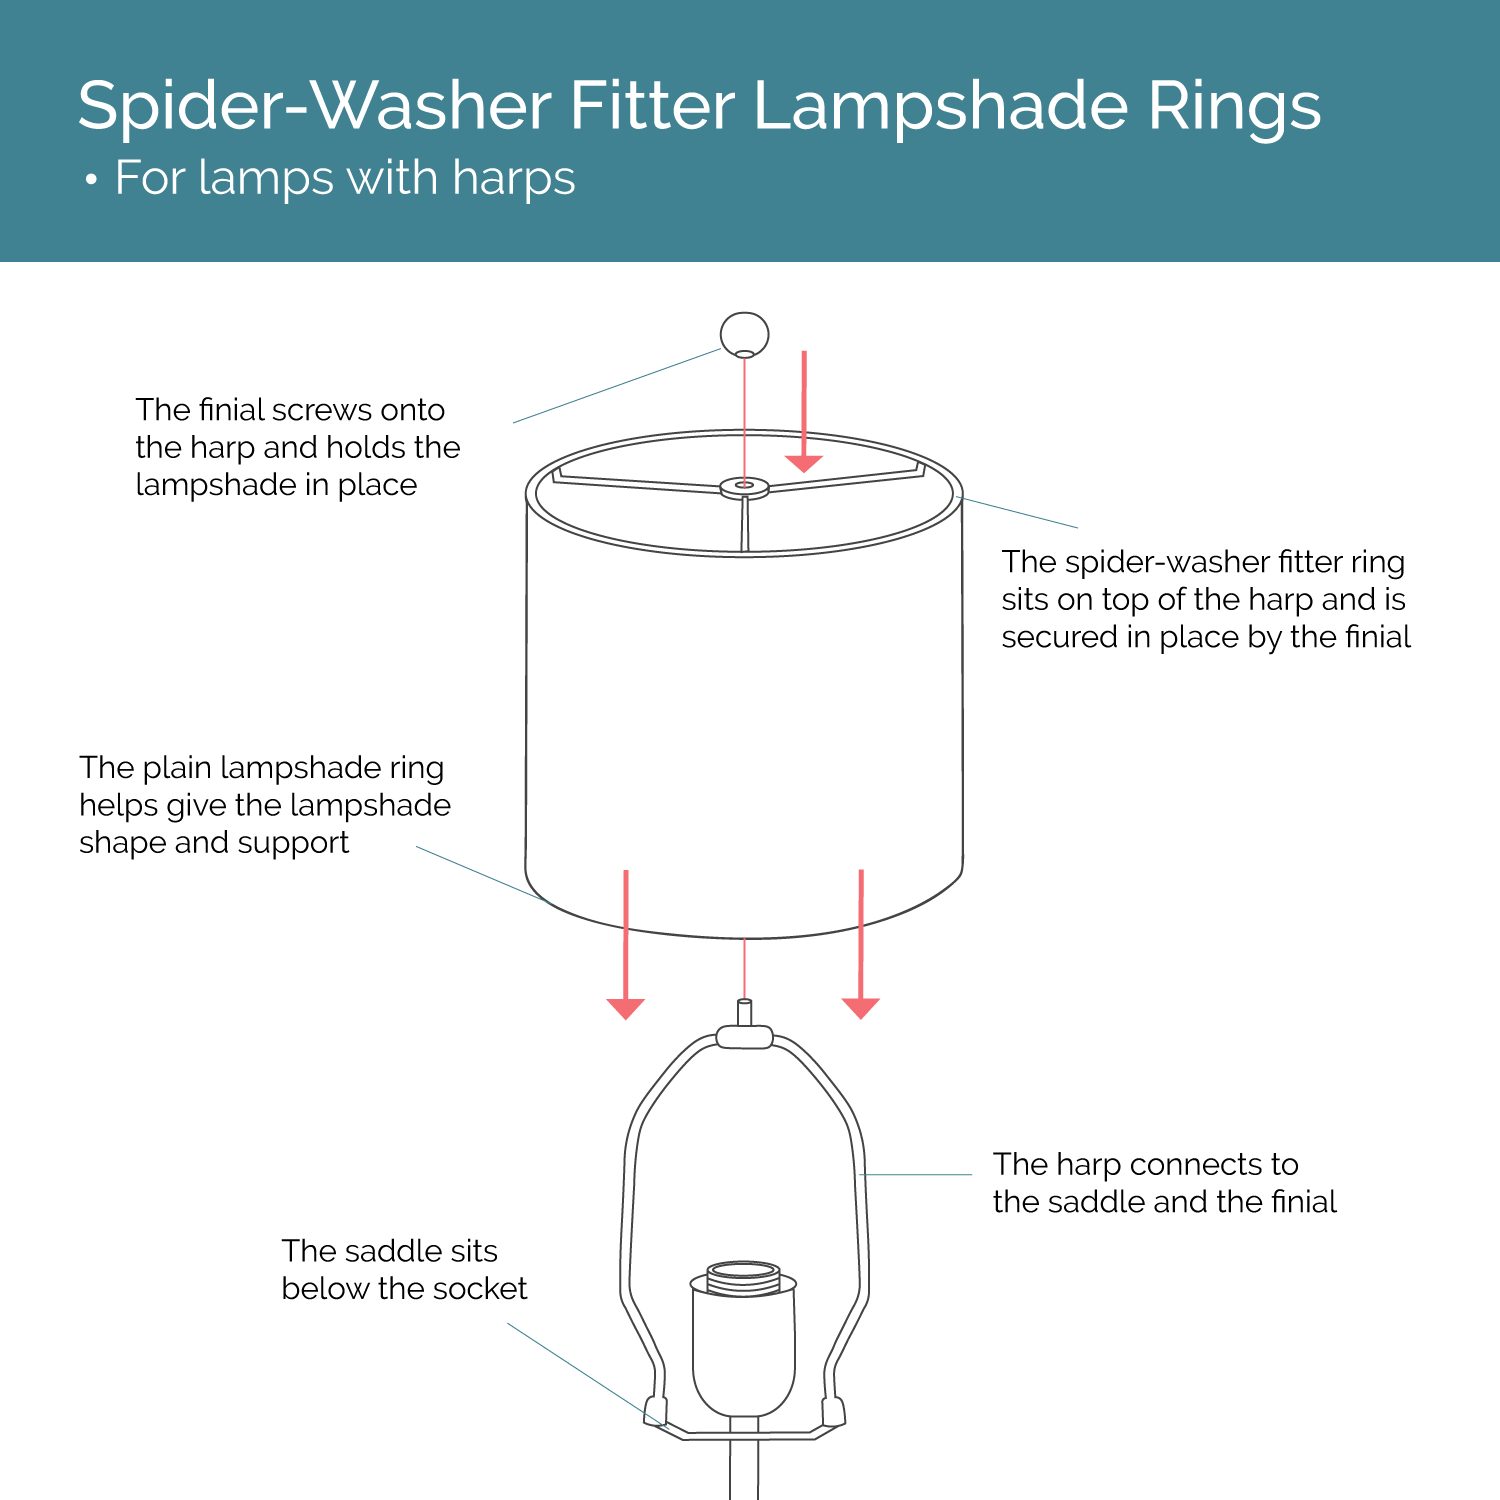 Well-liked Spider/Washer Fitter Lampshade Ring Set - I Like That Lamp ID26